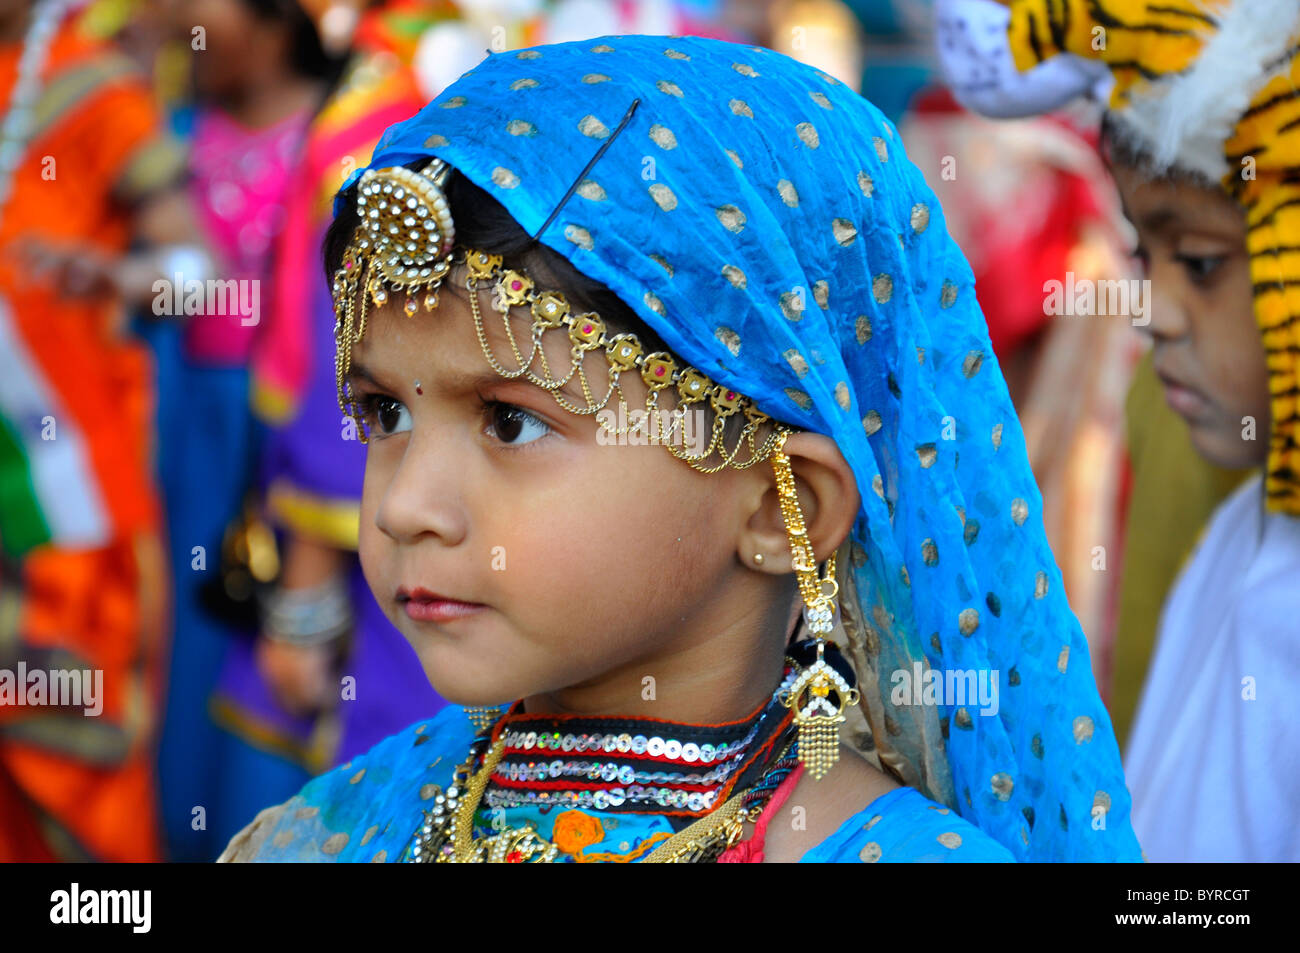 218be4b9 Punjabi Child Stock Photos & Punjabi Child Stock Images - Alamy